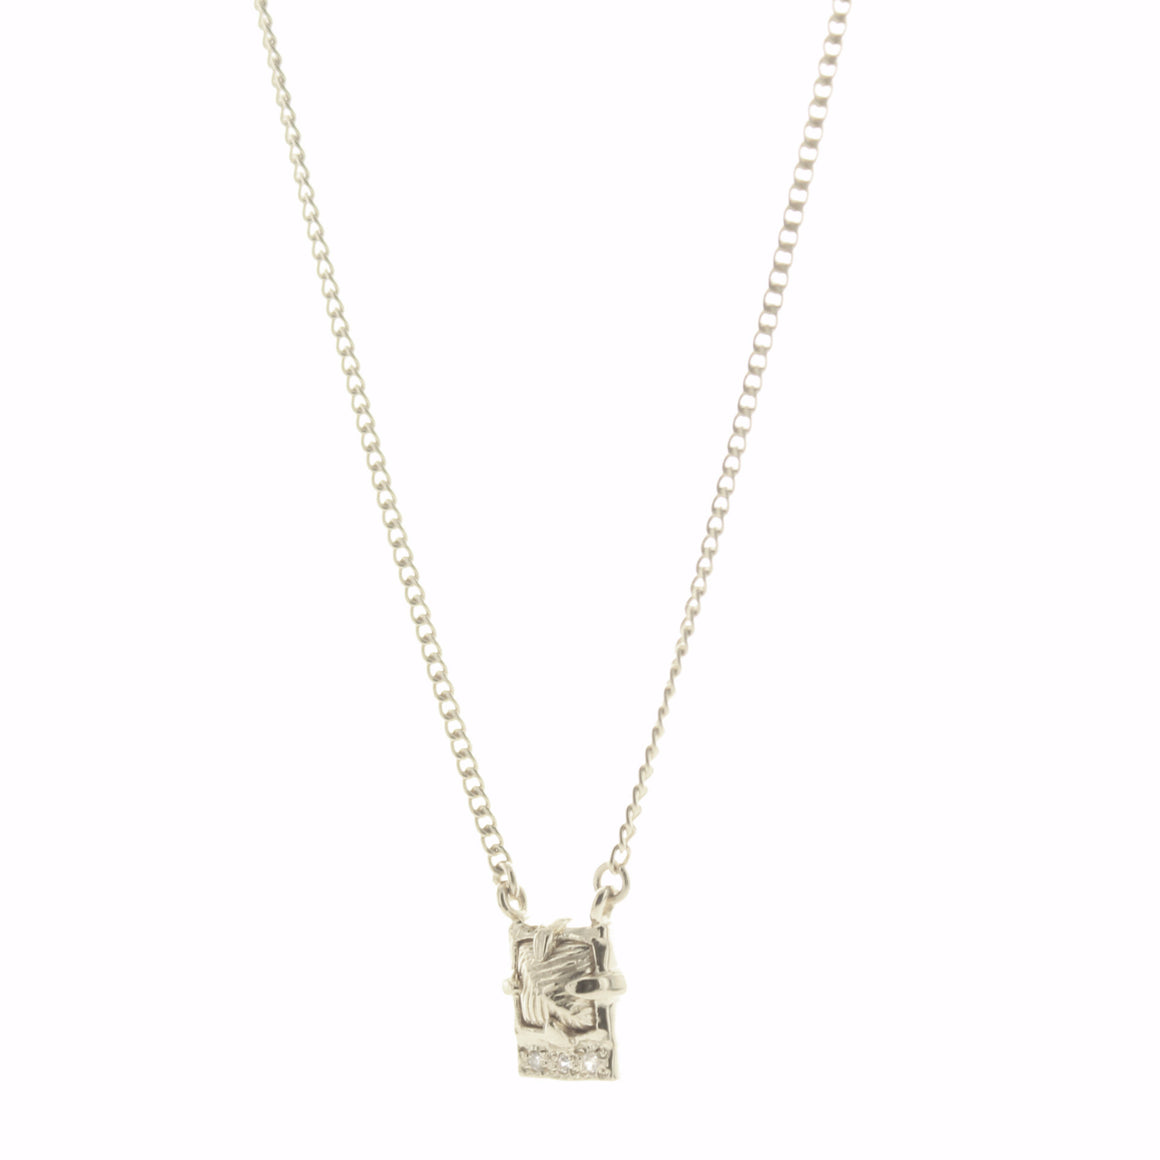 MINI BRAVE NECKLACE - SILVER